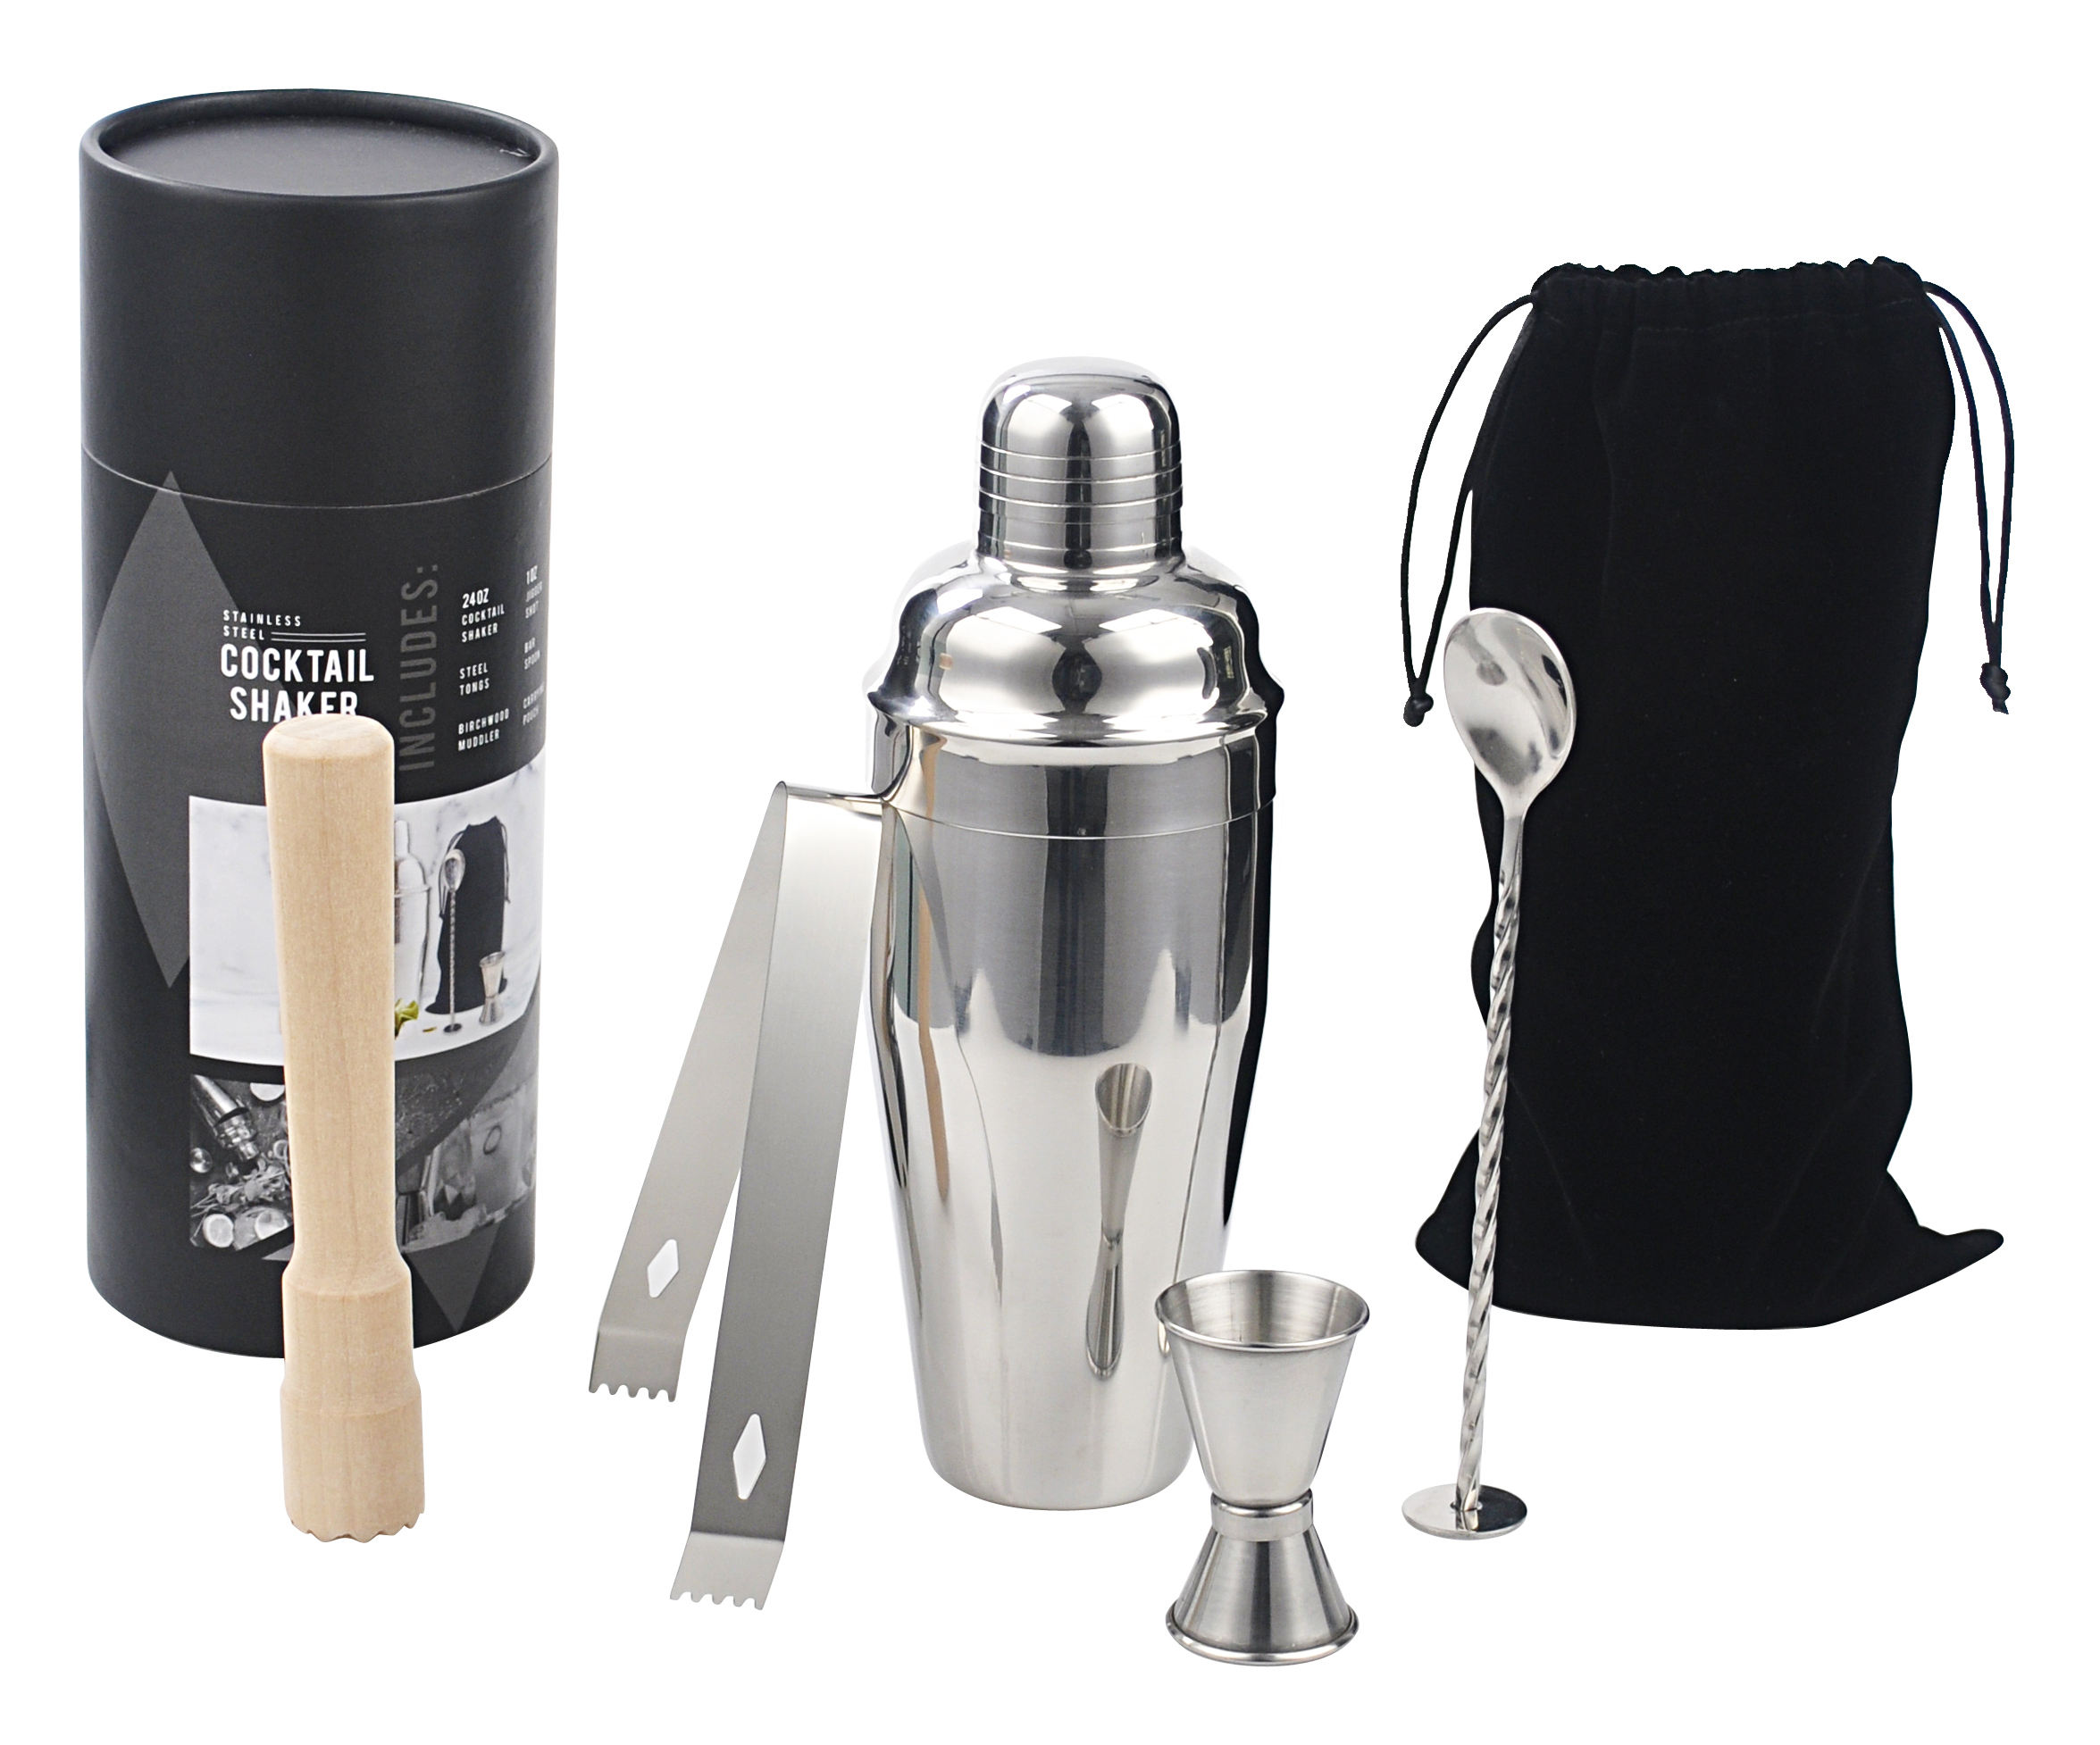 Grosir 750Ml Shaker Gift Set Cocktail Shaker Set Stainless Steel Minum Mixer Hadiah Bar Set Box Koktail <span class=keywords><strong>Aksesoris</strong></span> Bar Tools